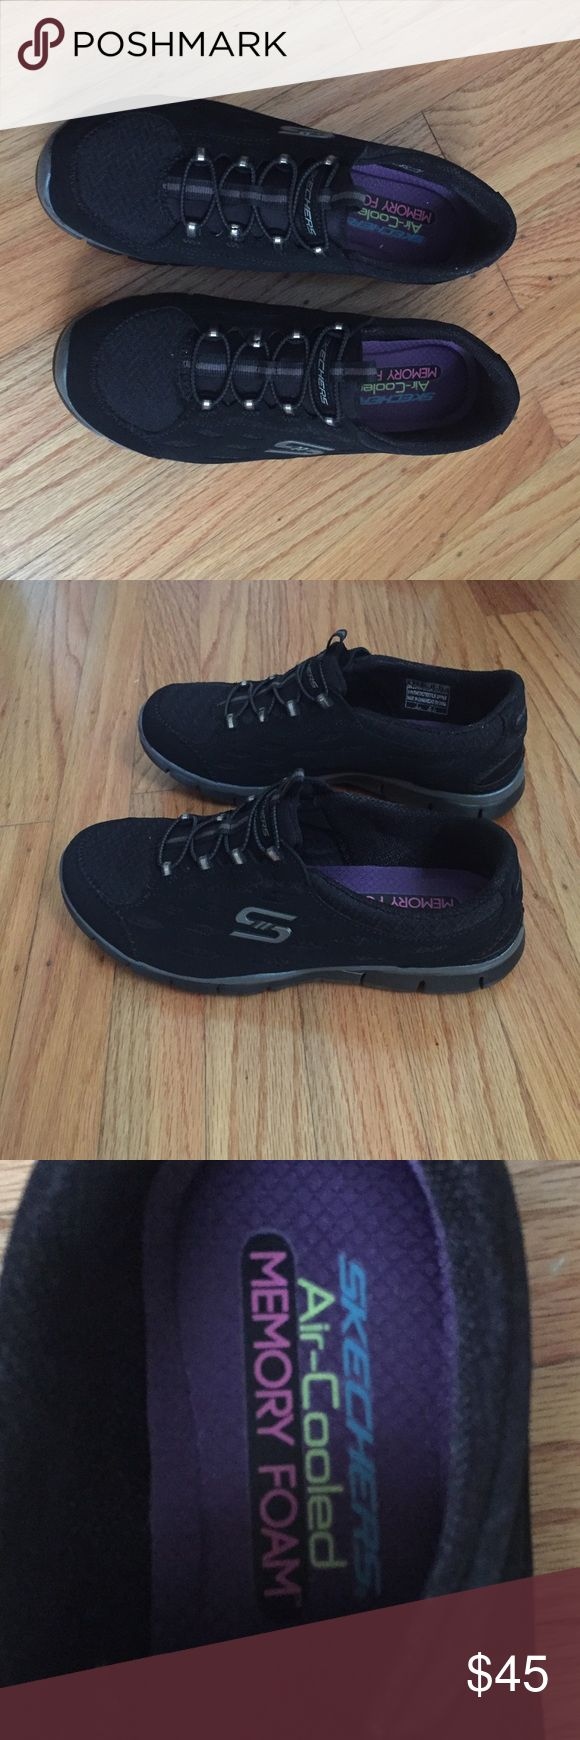 BRAND NEW! Black Skechers Sneakers Brand new & never worn! Without tags or box. Size 8. Black Skechers sneakers - they are very comfortable. Skechers Shoes Sneakers